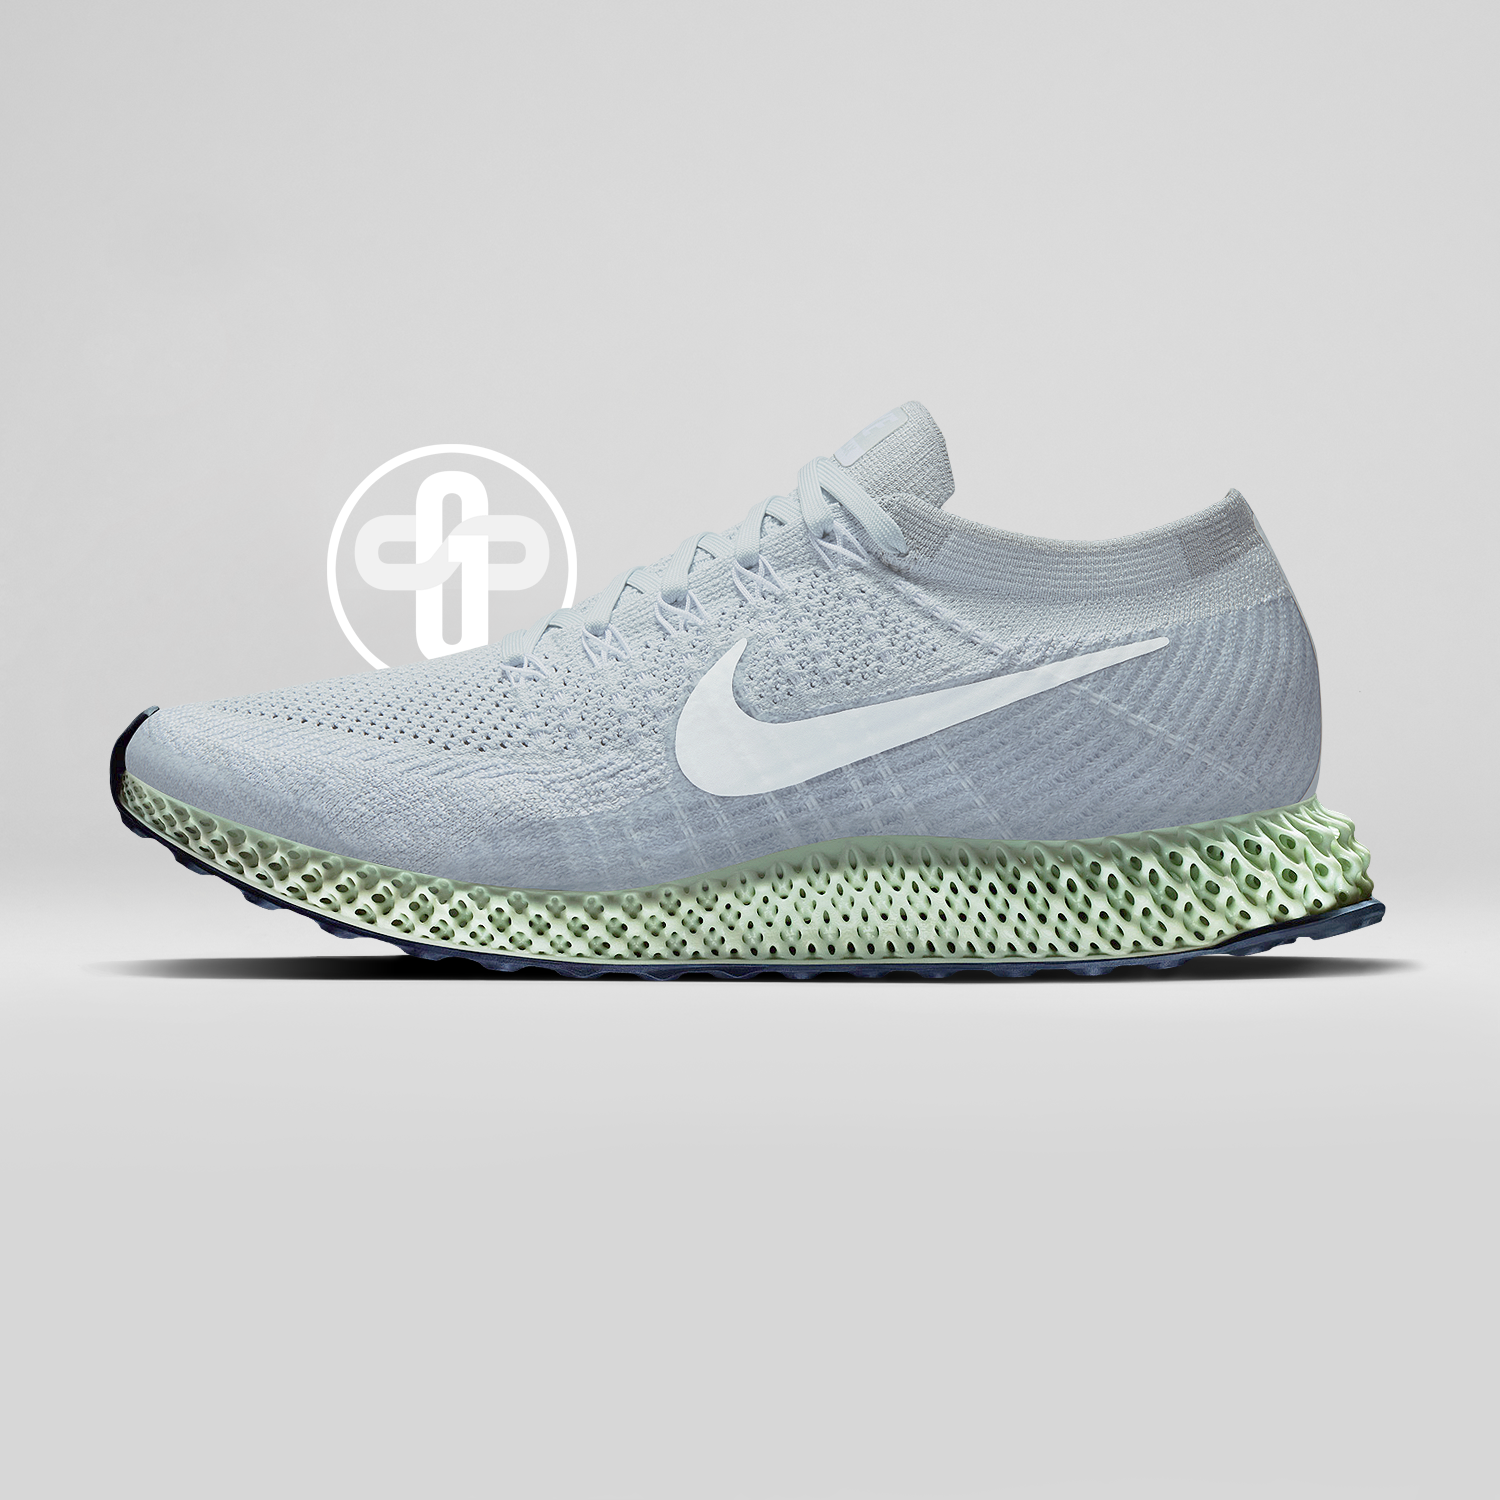 Running Shoes Unisex All Over 3D Printed Mesh Slip On Fashion Leaf Sea View Autumn Road Running